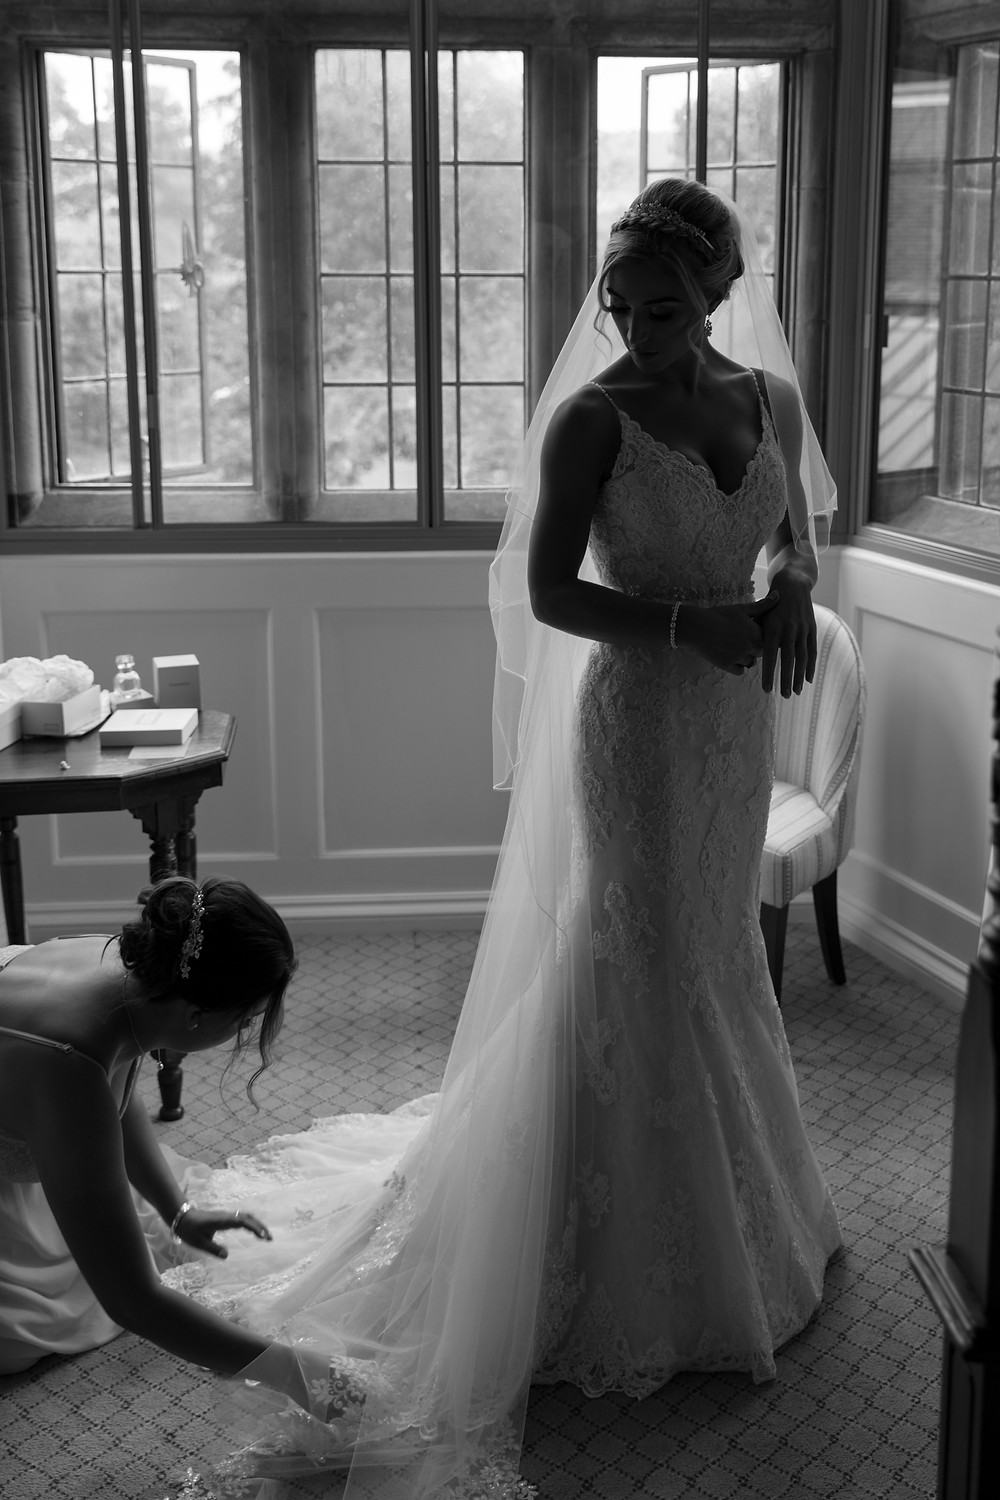 Bridesmaid helps the bride with her dress